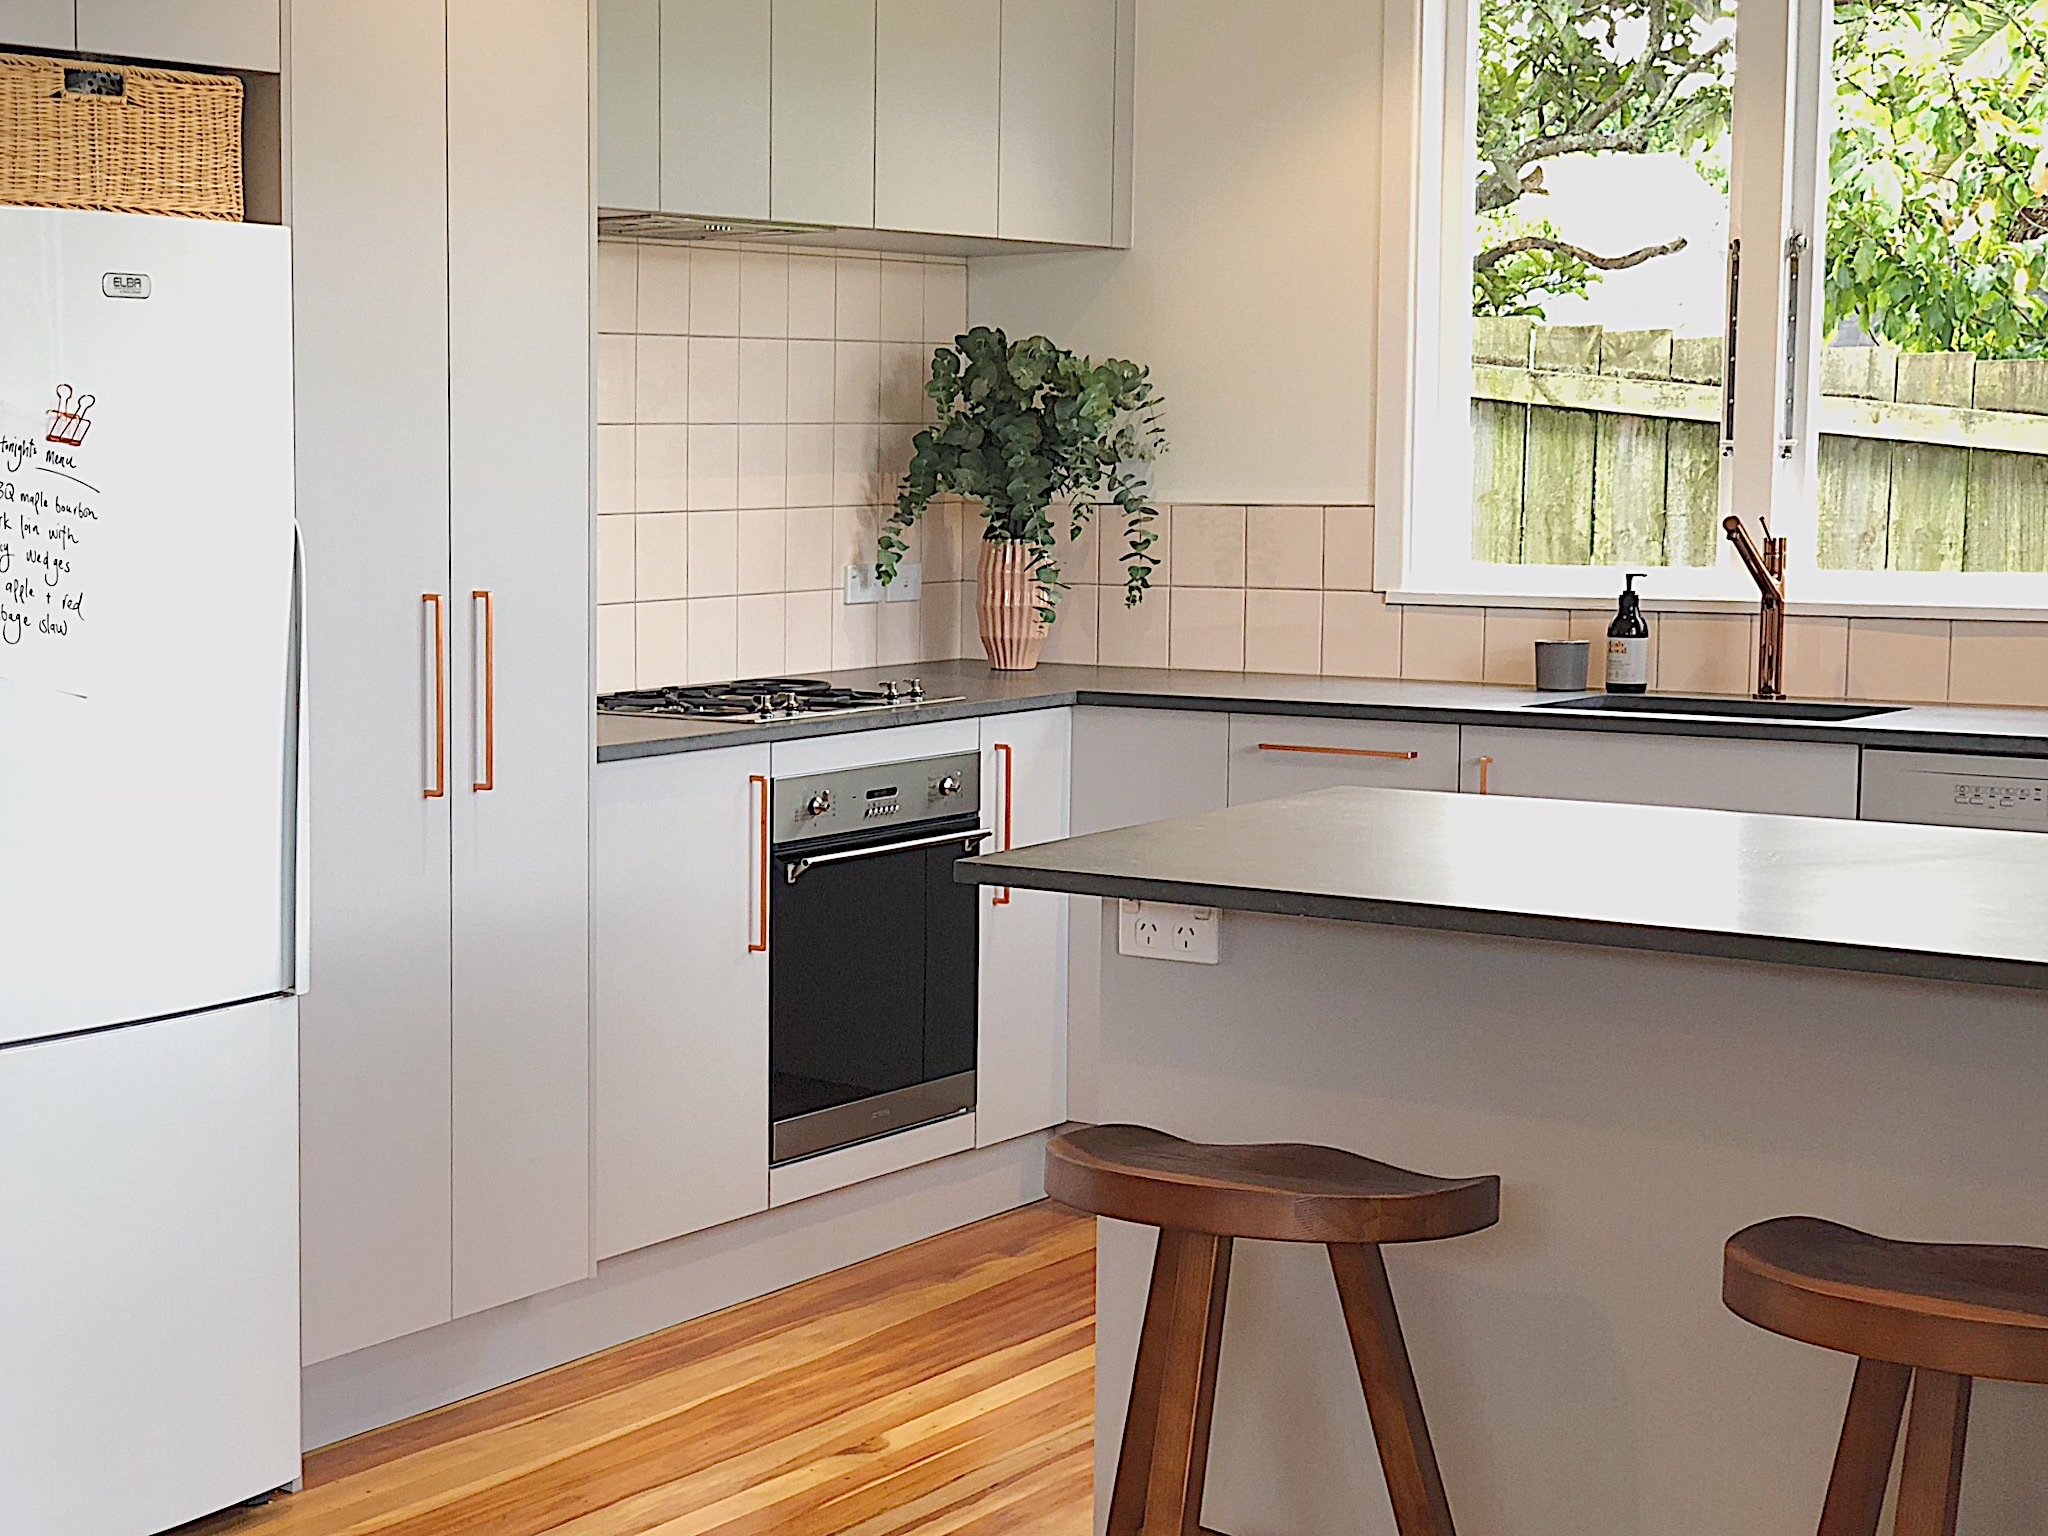 Pearson and Projects Relocatable Reno Kitchen Project - 2.jpg